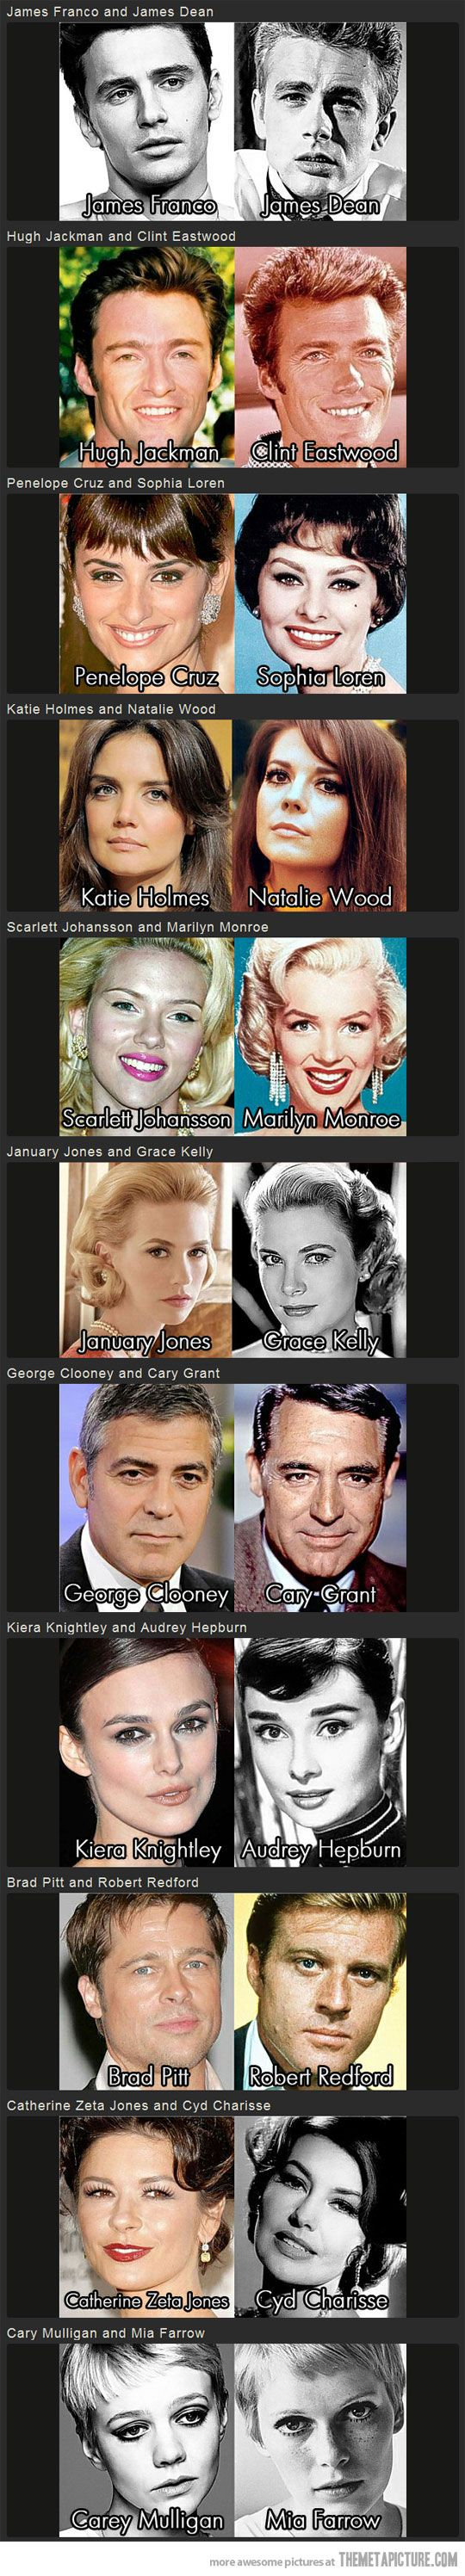 Today's movie stars and their classic film lookalikes. I think Catherine zeta jones and Penelope Cruz should be switched